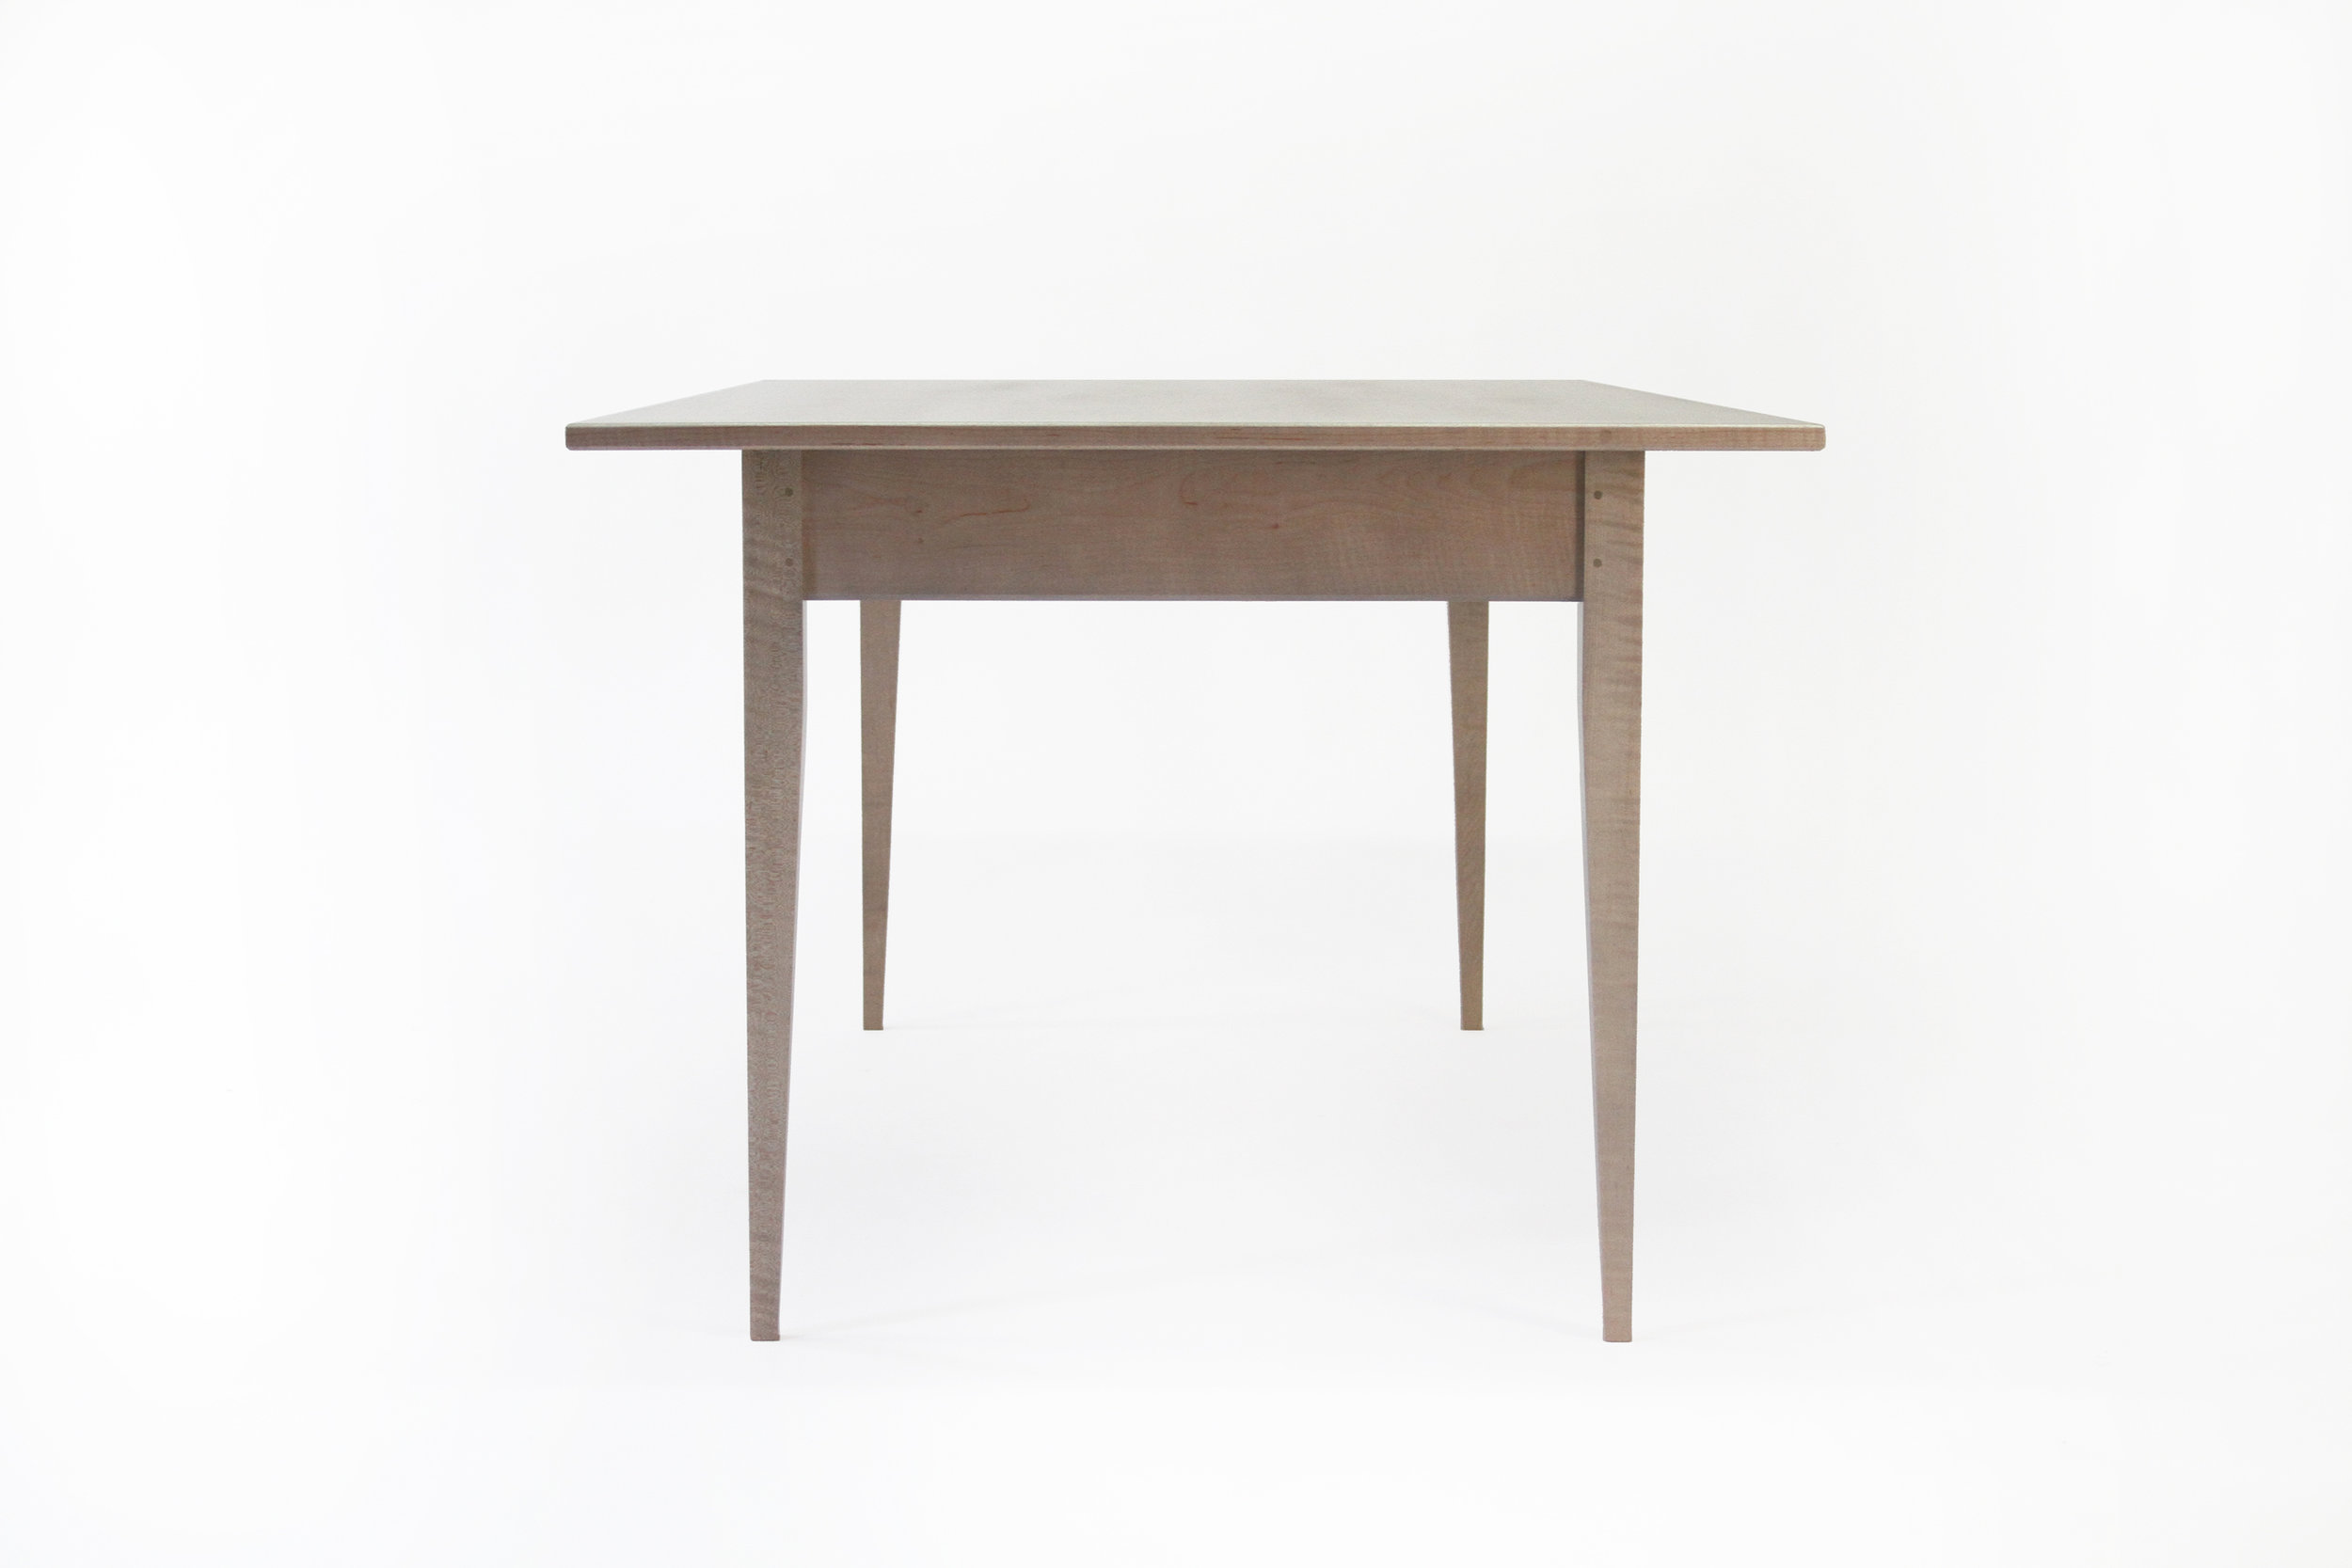 O&G Studio Buck Bench X Base Coffee Table Dining 48 Windsor Contemporary Side Americana Seating Modern Designed Design Interior Seating Azimuth Navy Blue Bronze Wedge Detail Pin Peg Stained